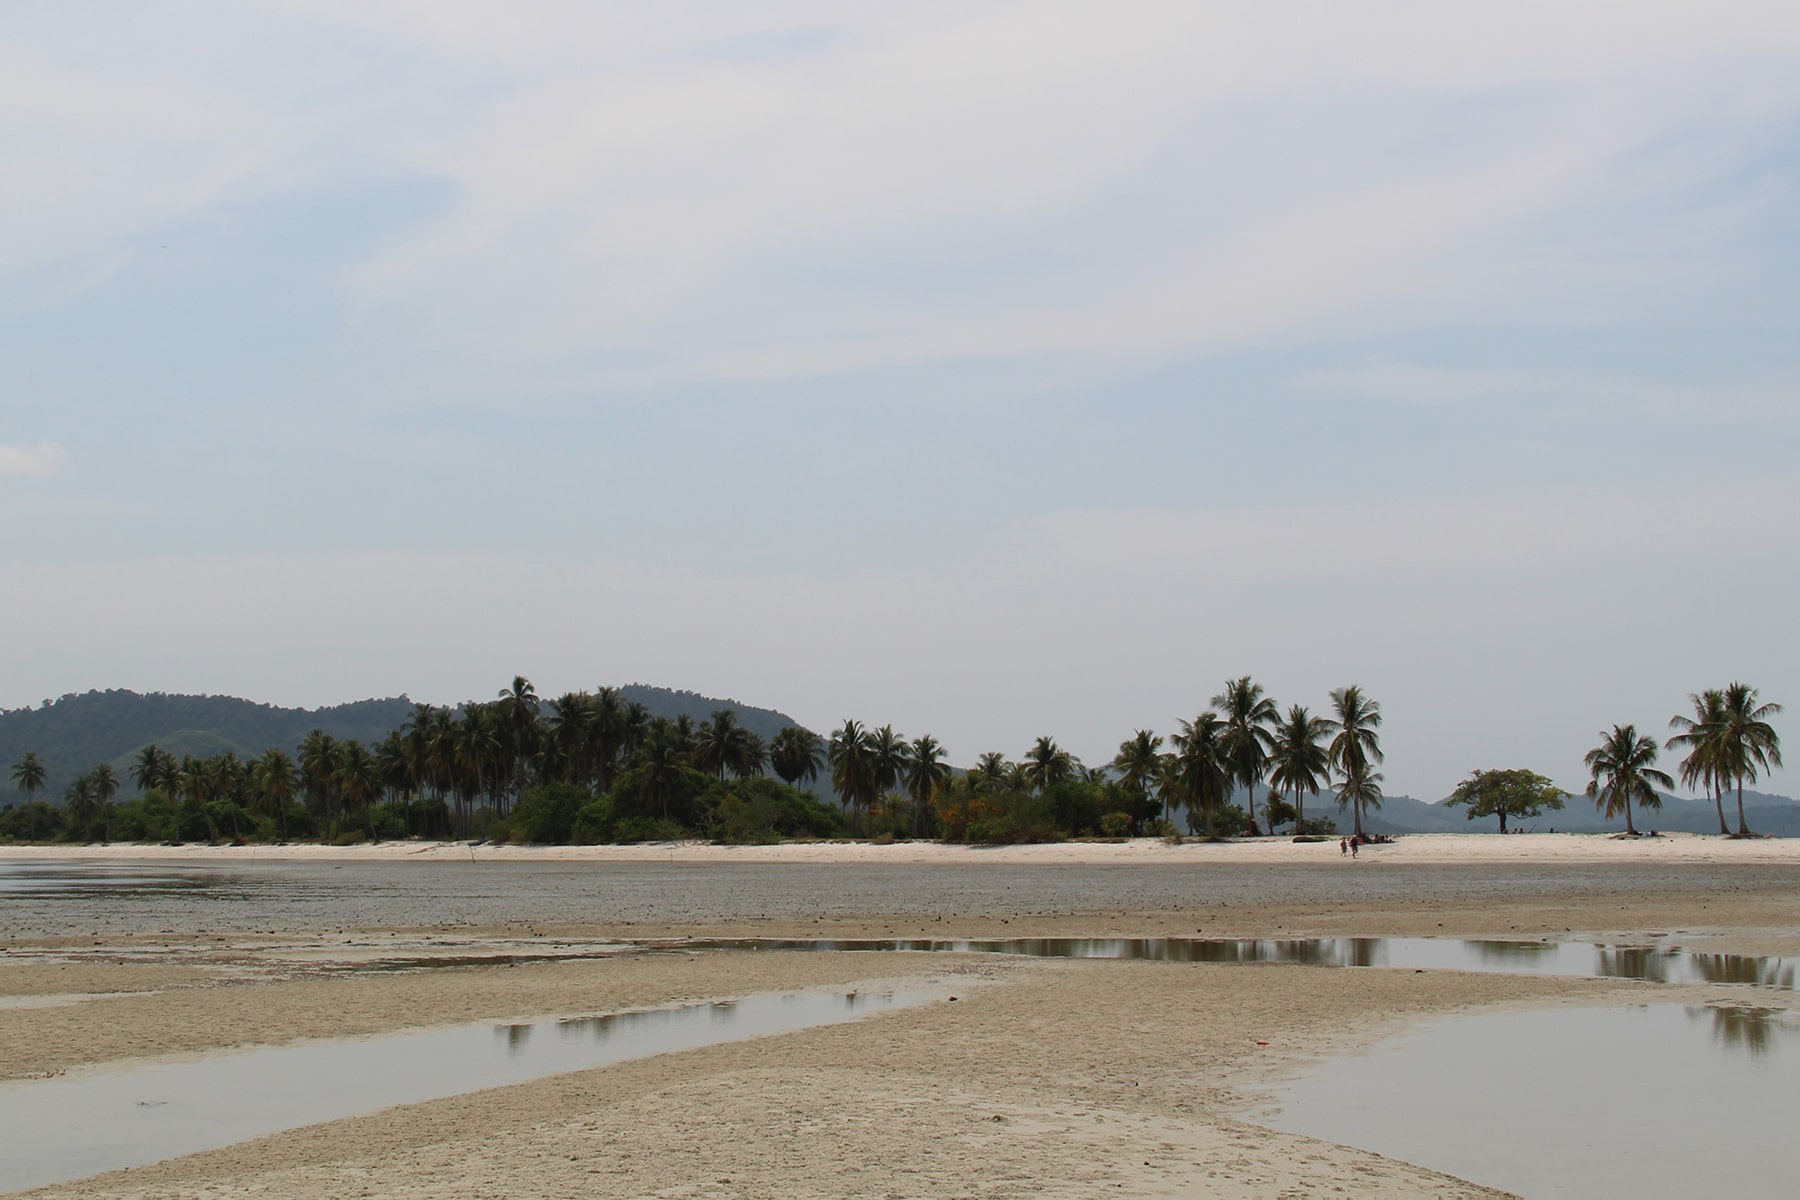 The low tide and Hua Lam Laad Beach - Koh Yao Yai island